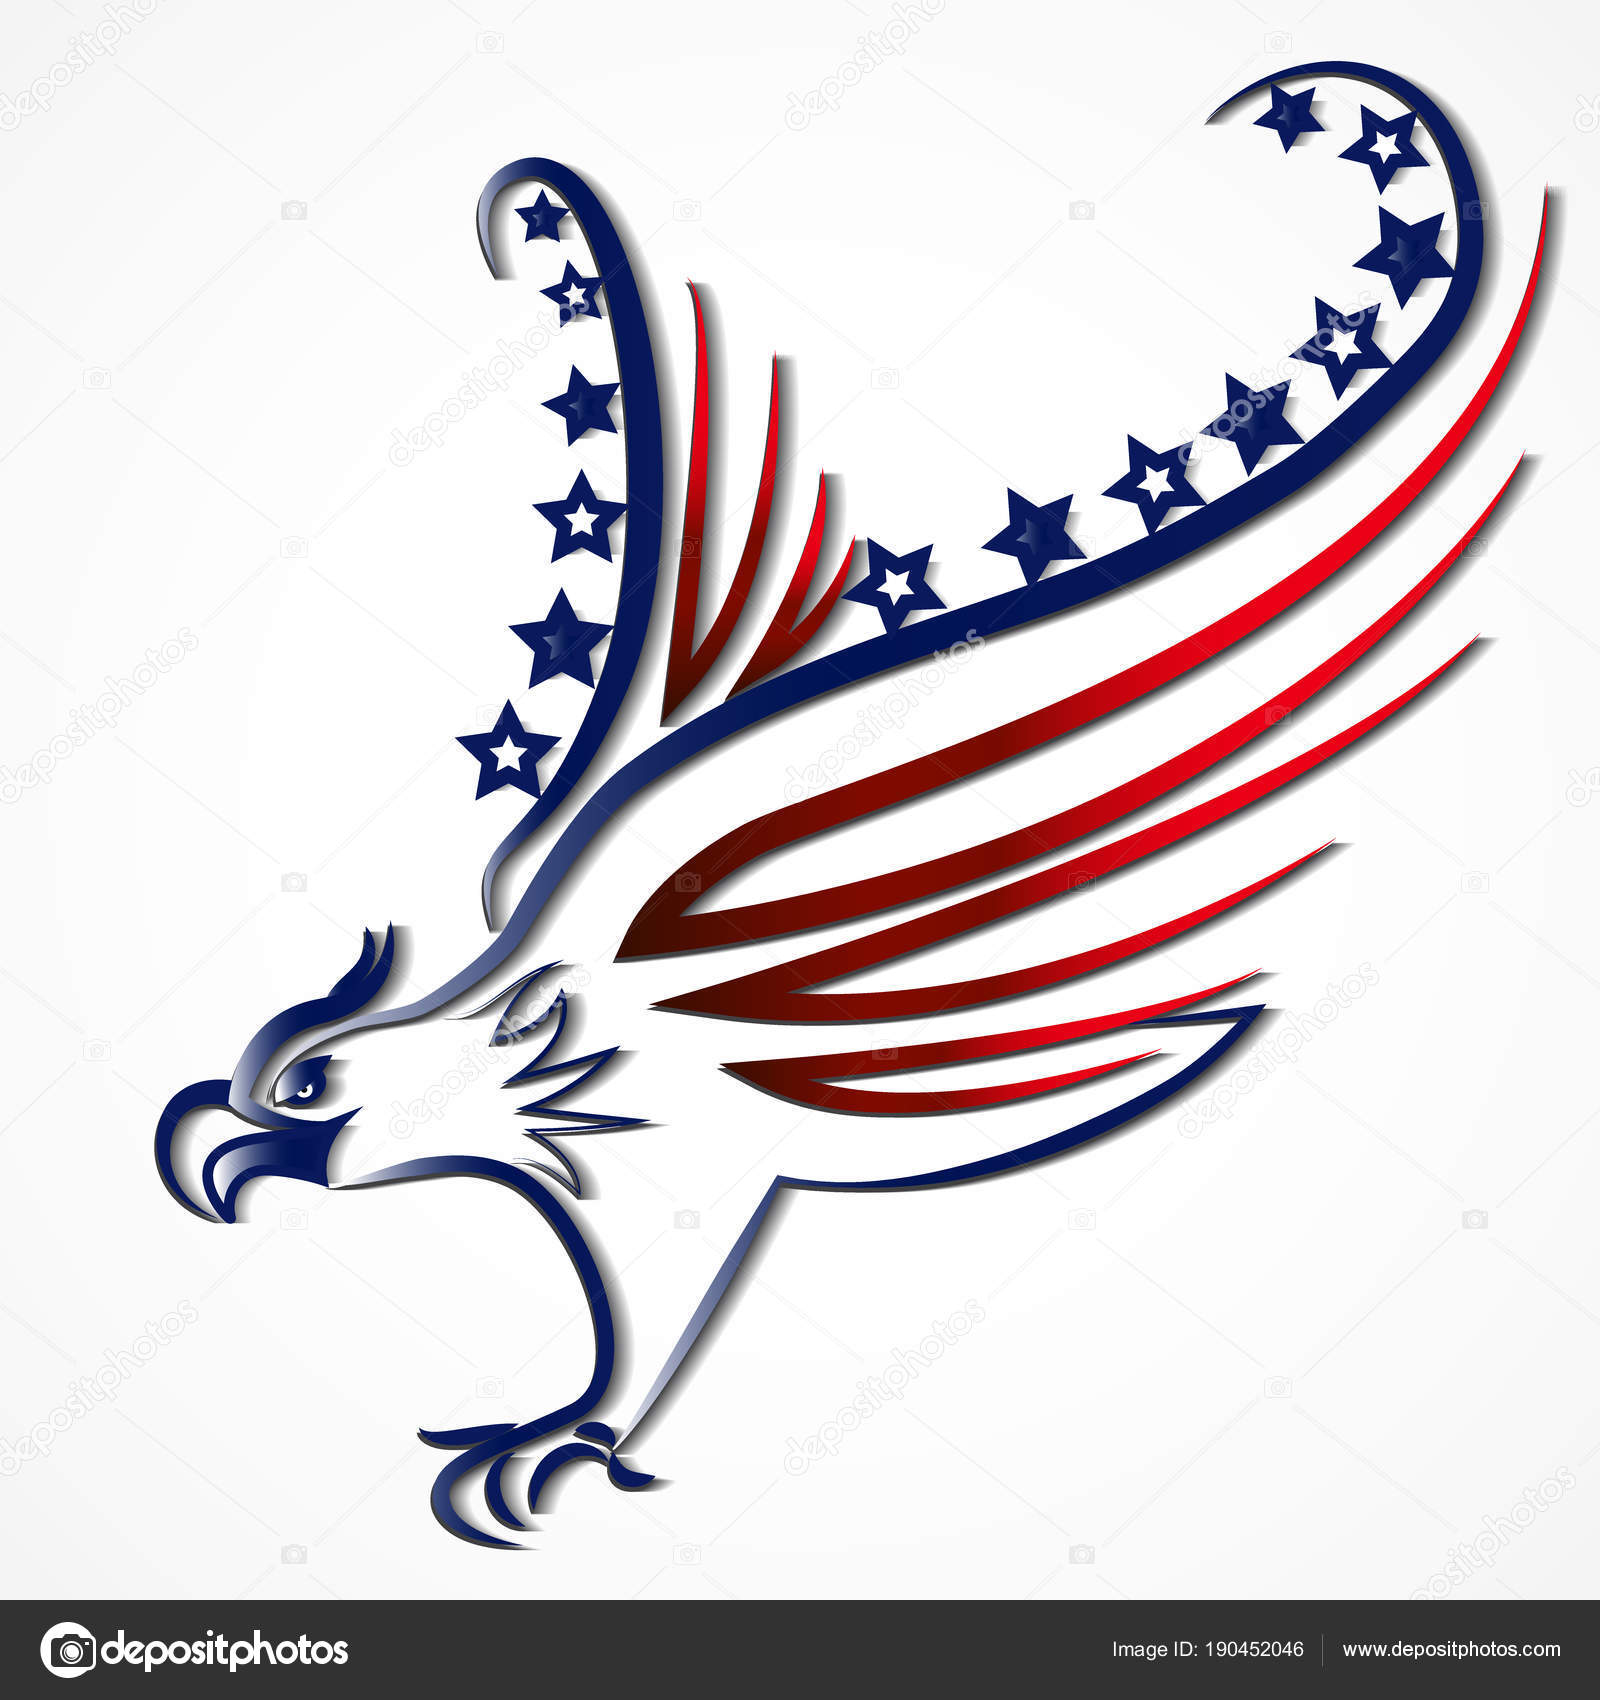 Eagle american usa flag symbol logo stock vector glopphy eagle american usa flag symbol logo stock vector biocorpaavc Gallery